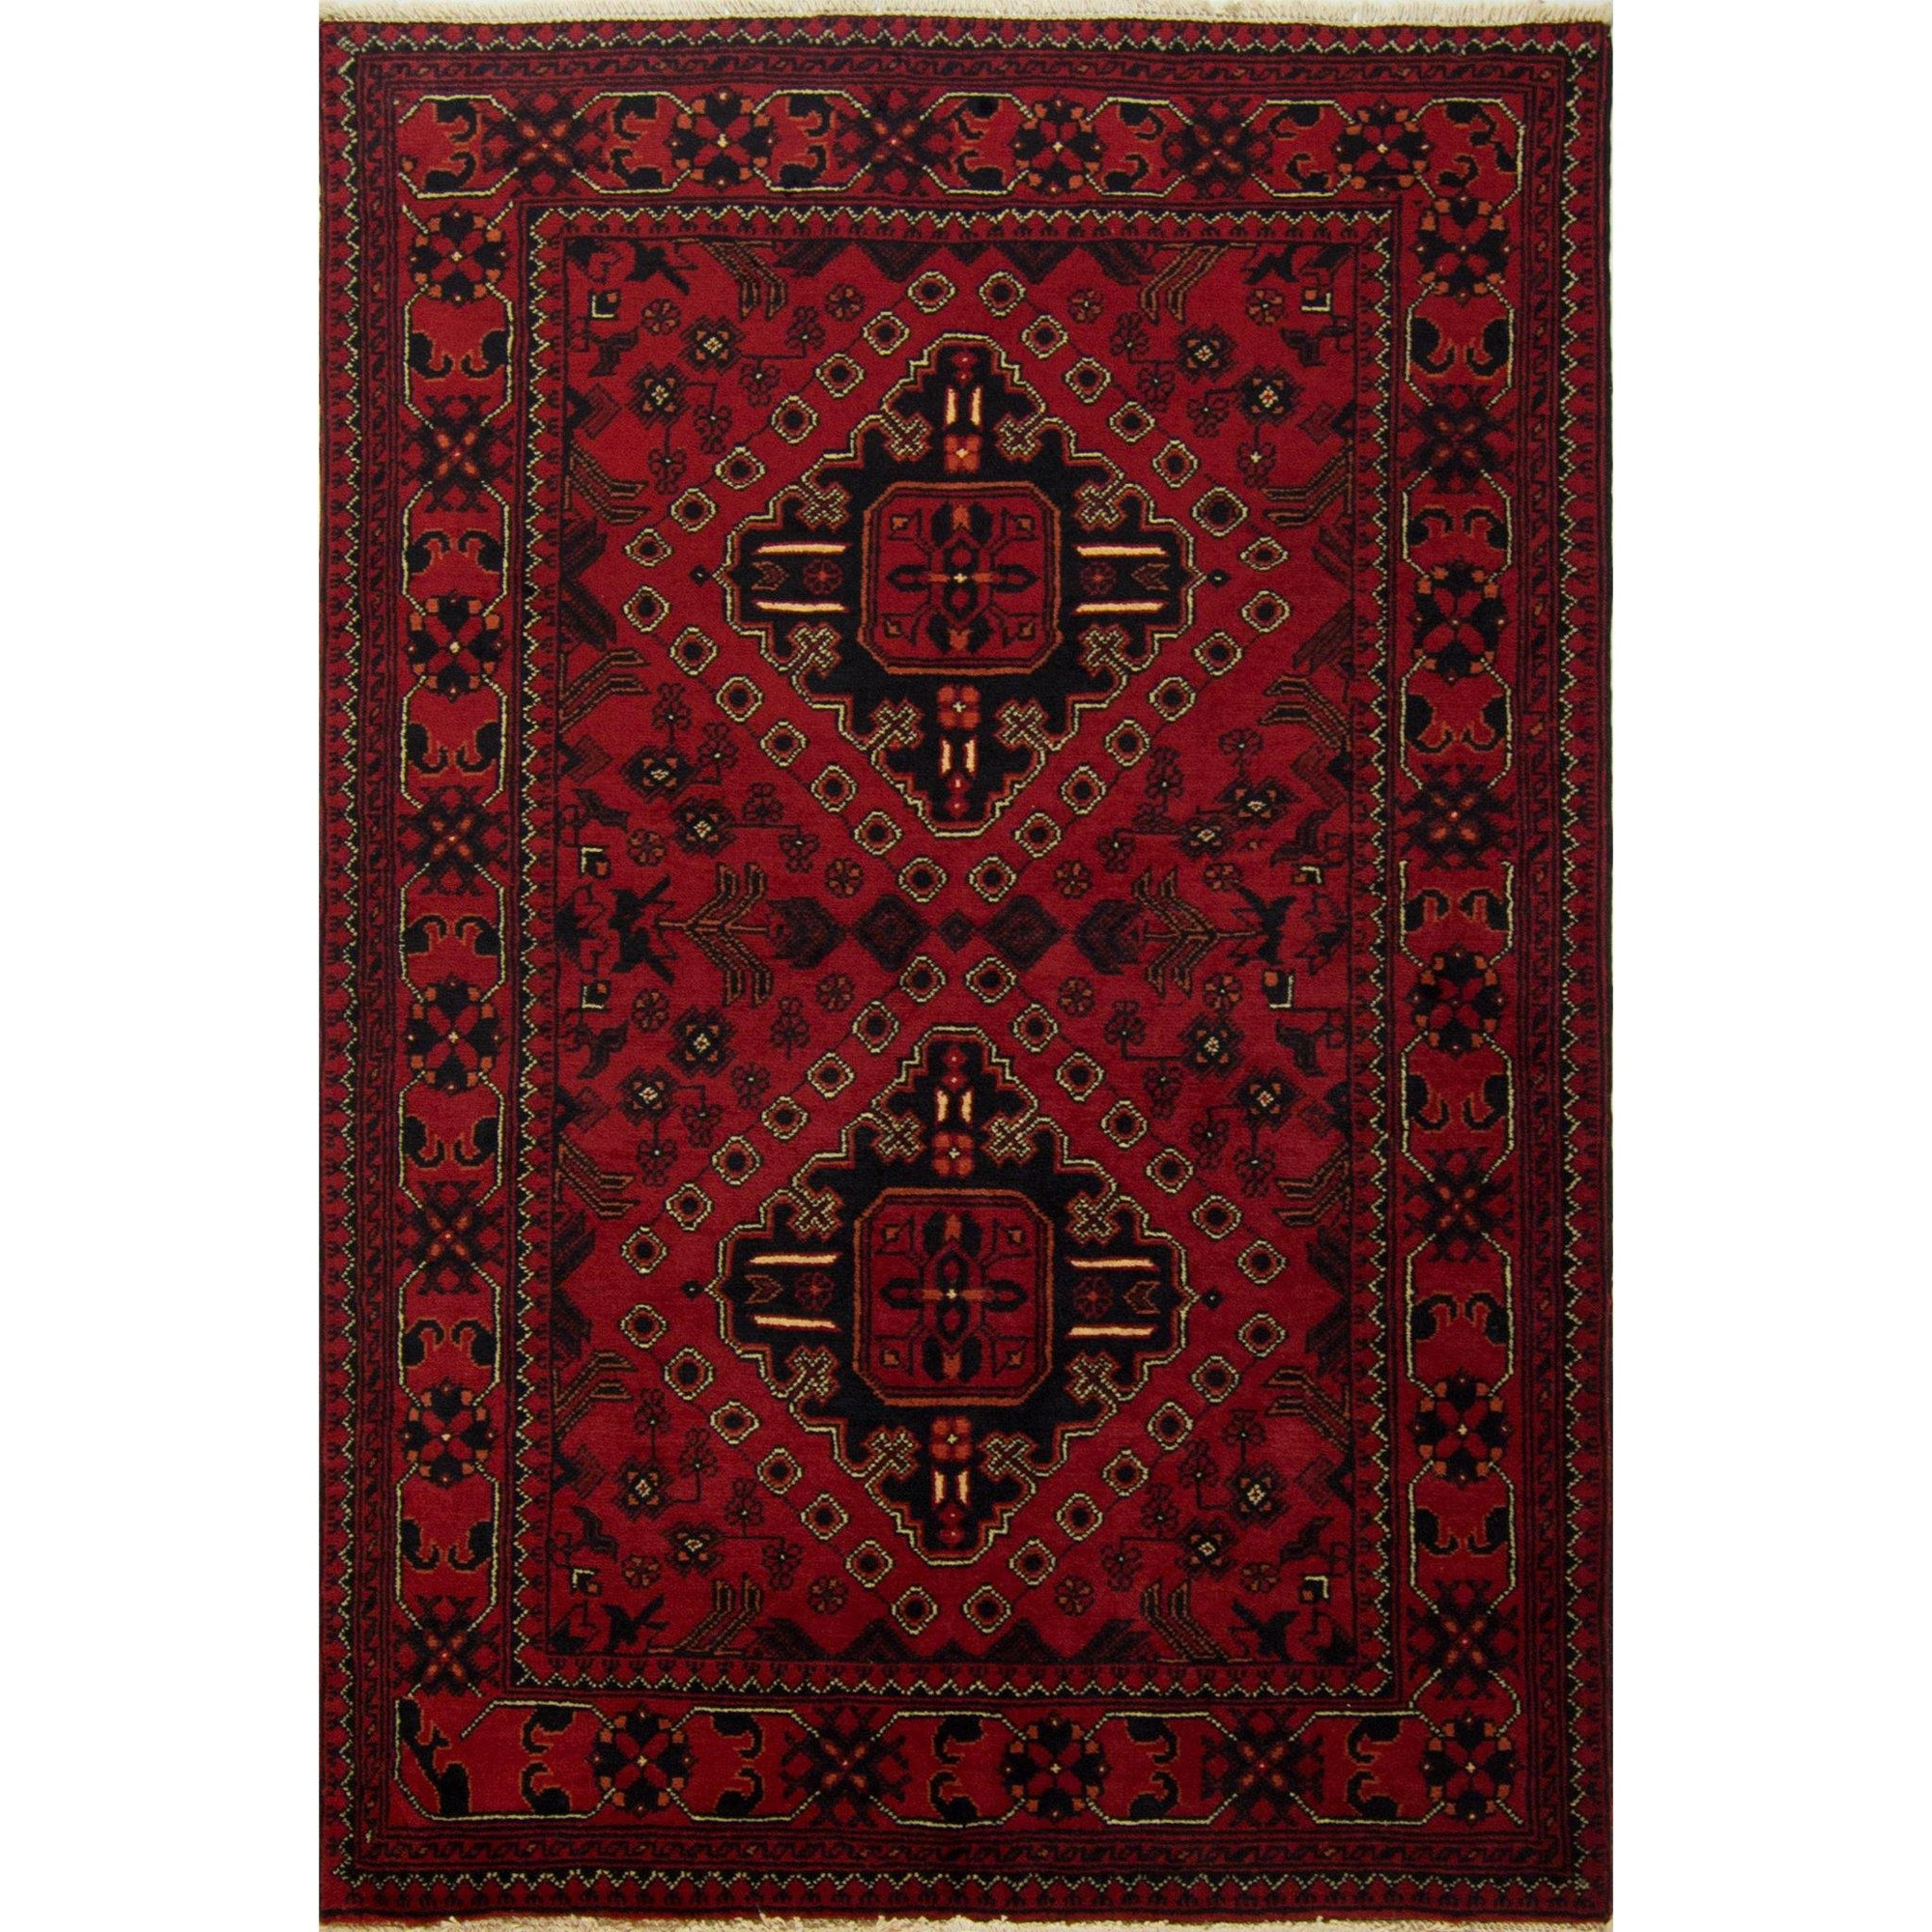 Fine Tribal Hand-knotted Afghan 100% Wool Khal Mohammadi Rug 97cm x 144cm Persian-Rug | House-of-Haghi | NewMarket | Auckland | NZ | Handmade Persian Rugs | Hand Knotted Persian Rugs